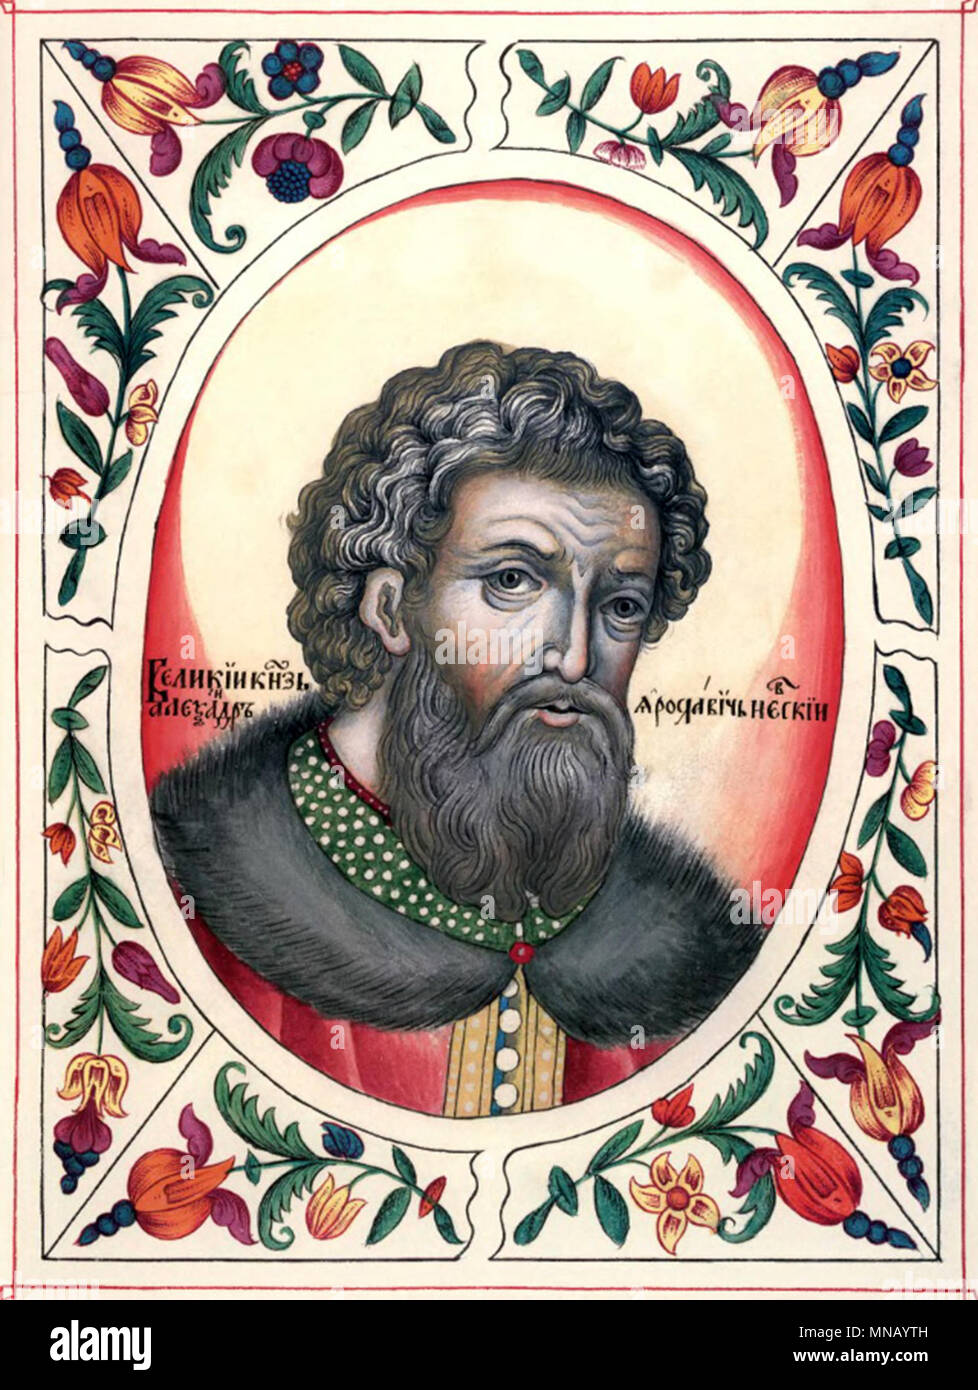 Prince Alexander Nevsky. (1221 – 1263) served as Prince of Novgorod (1236–40 and 1240-56 and 1258-1259), Grand Prince of Kiev (1236–52) and Grand Prince of Vladimir (1252–63) - Stock Image